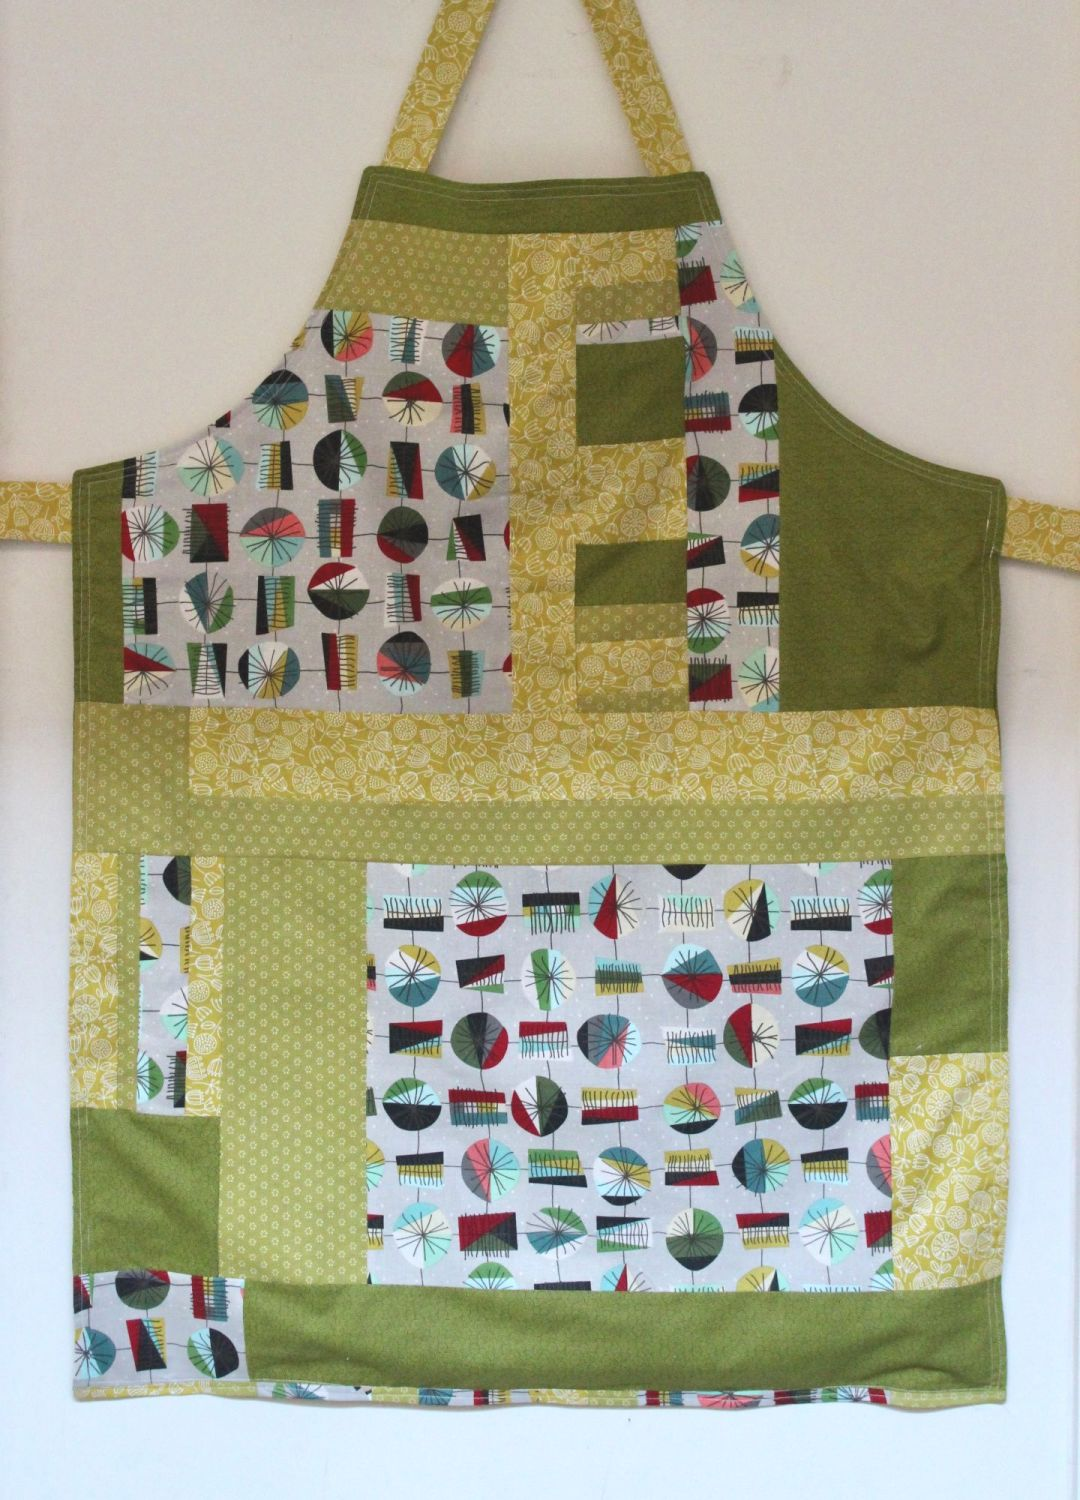 Reversible Apron In Greens/Yellows